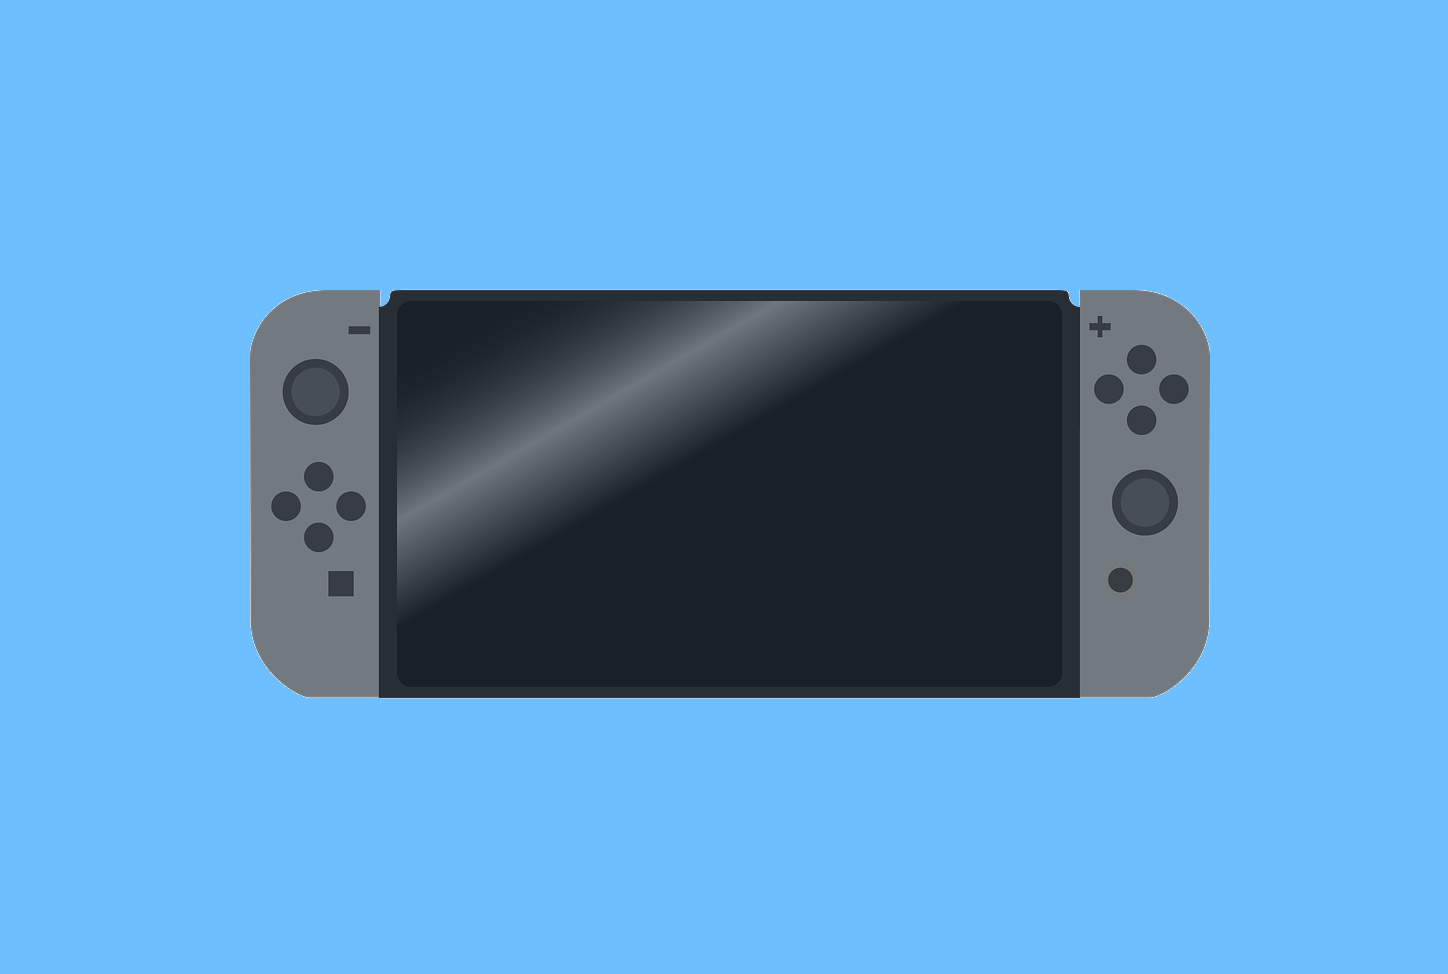 Nintendo second generation switch exposure: support n-card image quality /  frame rate magic skill dlss2.0_China IT News